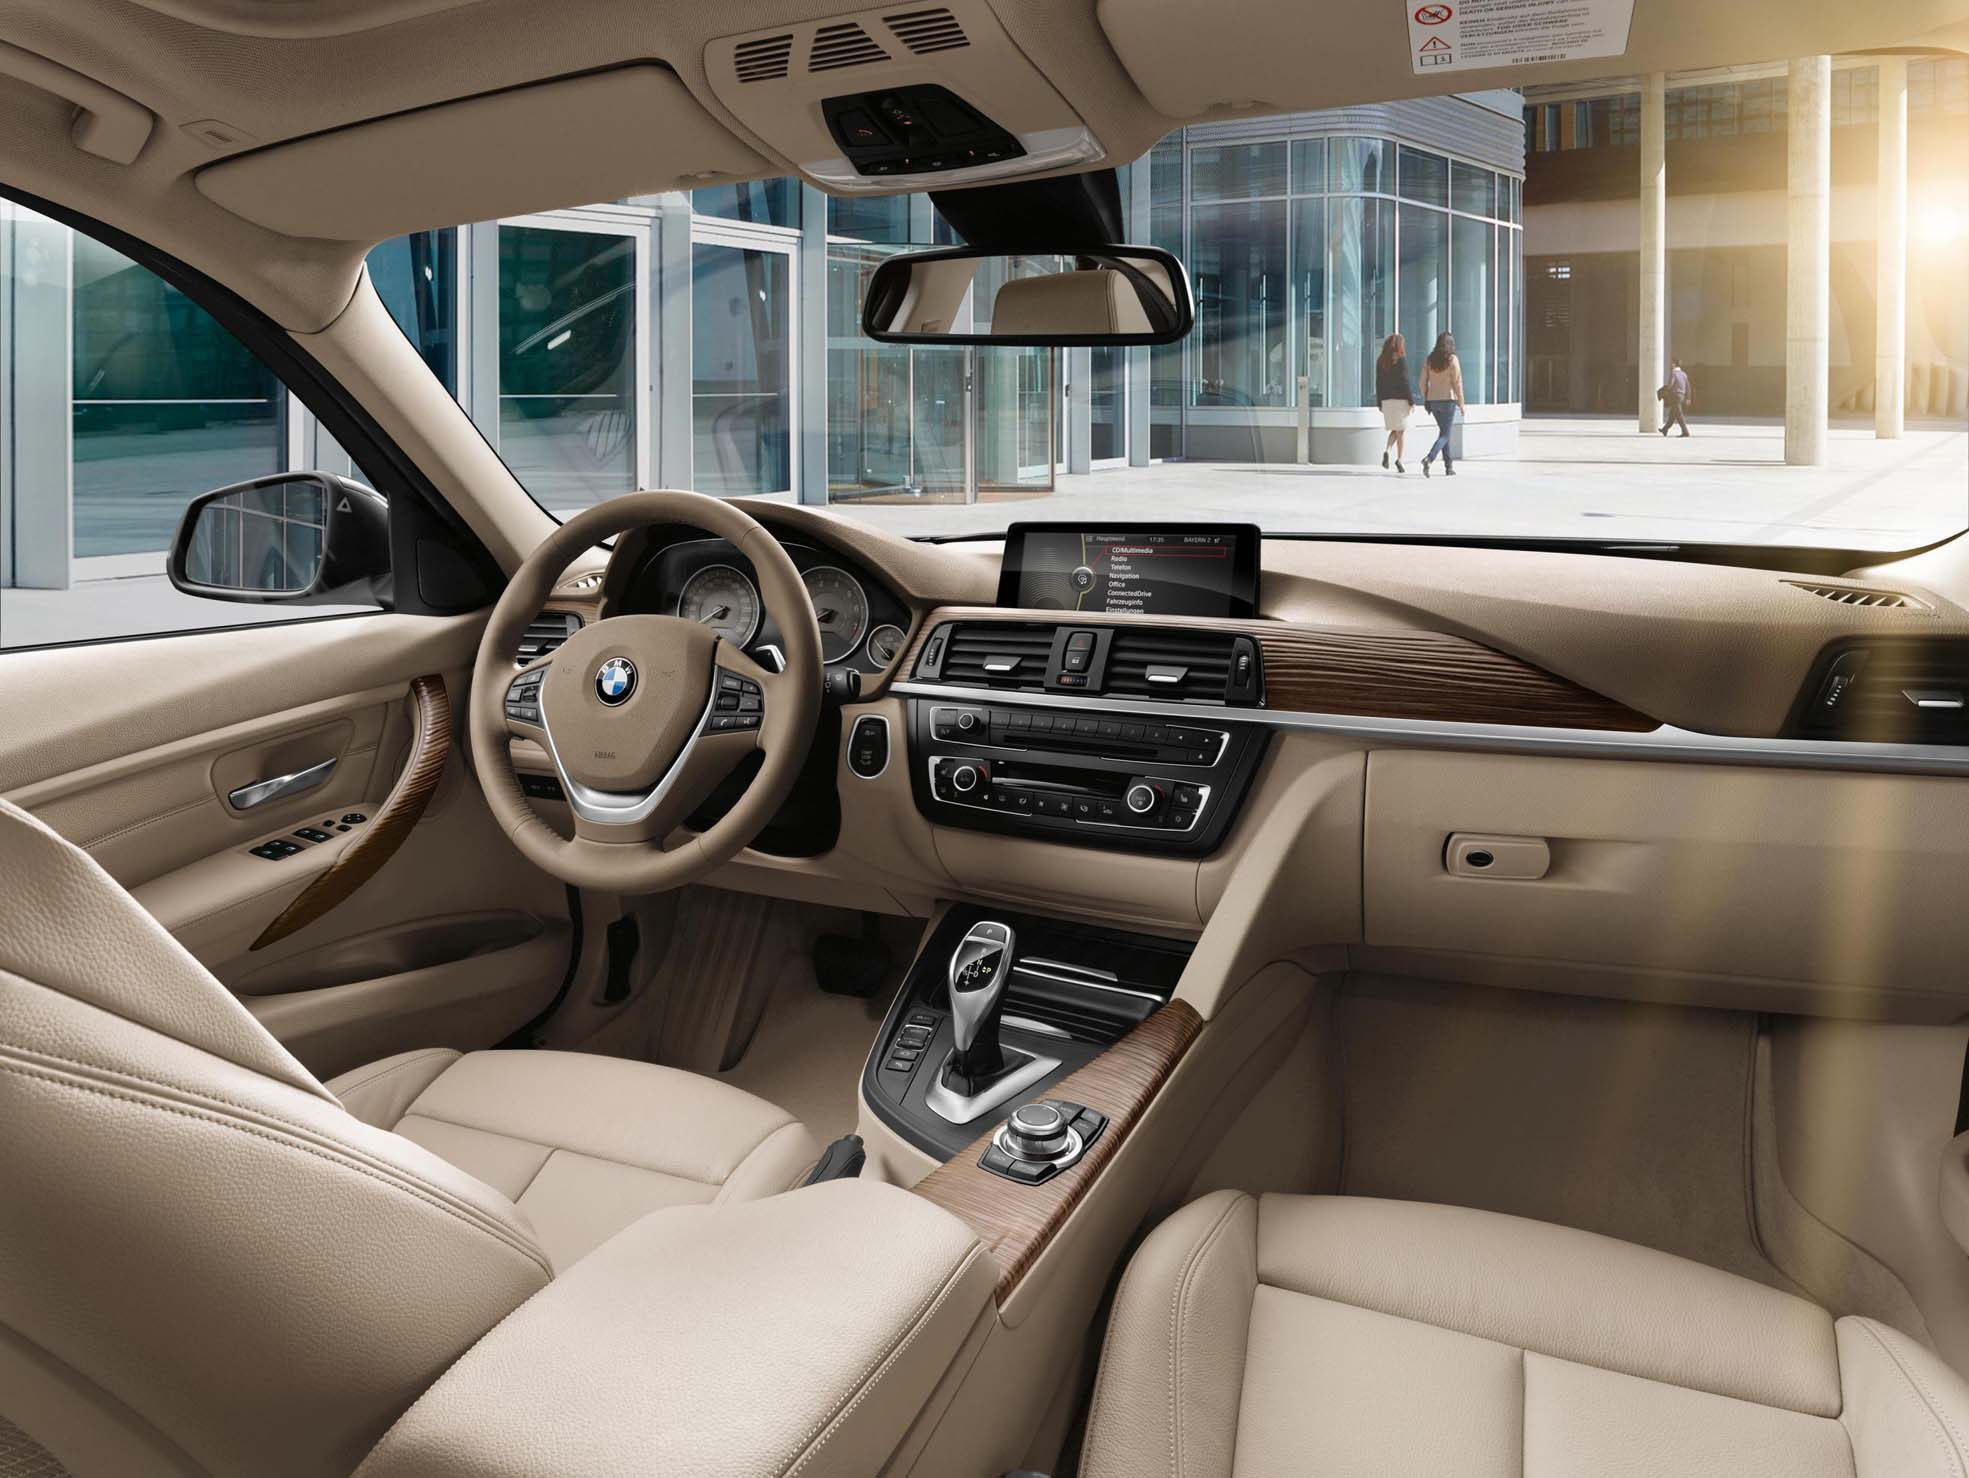 2013 bmw 320i interior male models picture - Having